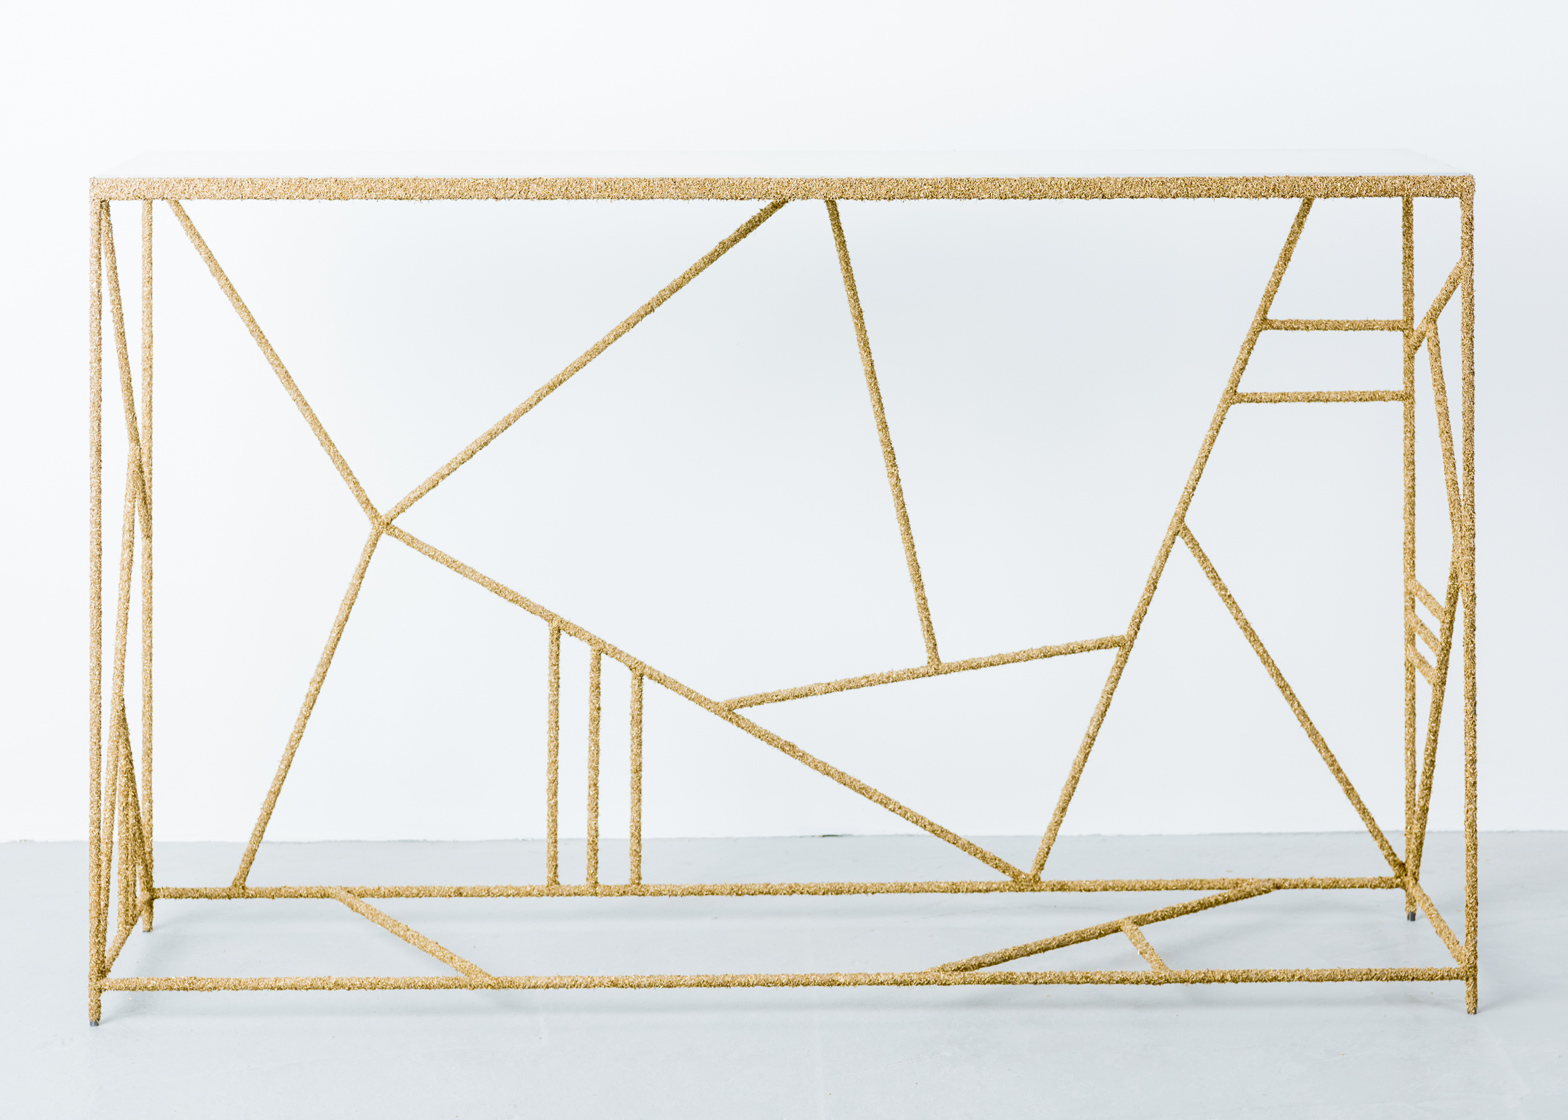 Brass shaving furniture by Samuel Amoia